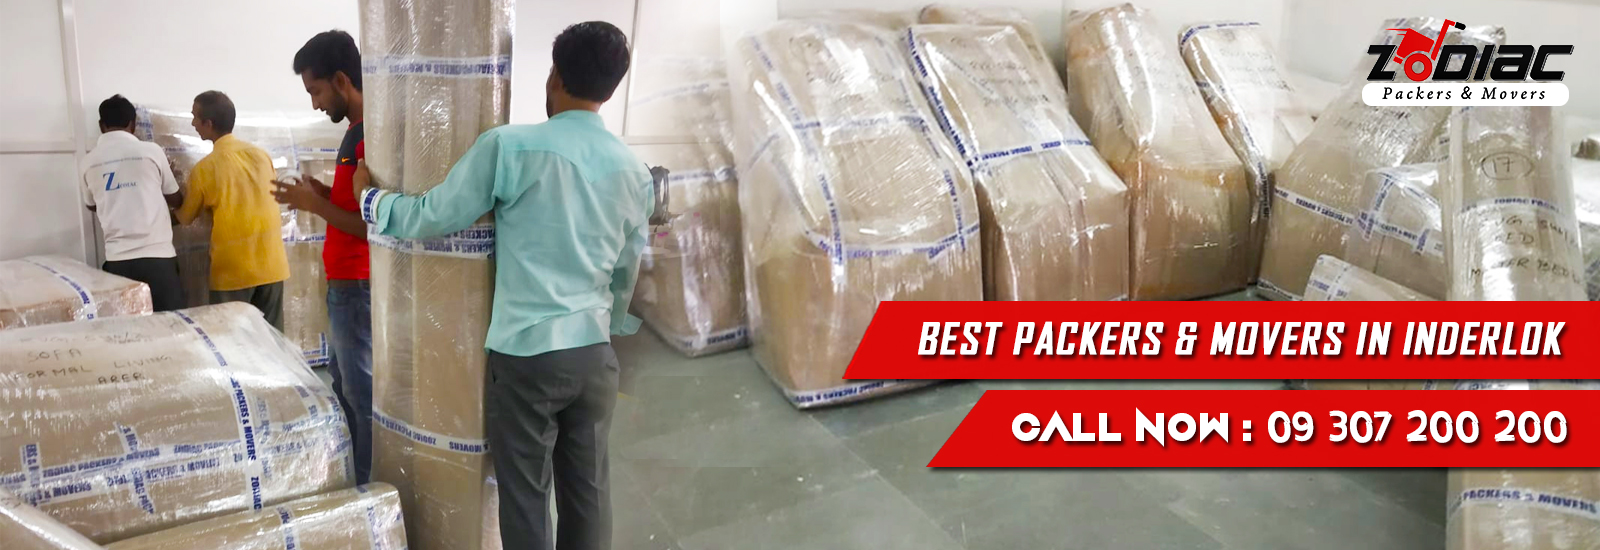 Packers and Movers in Inderlok